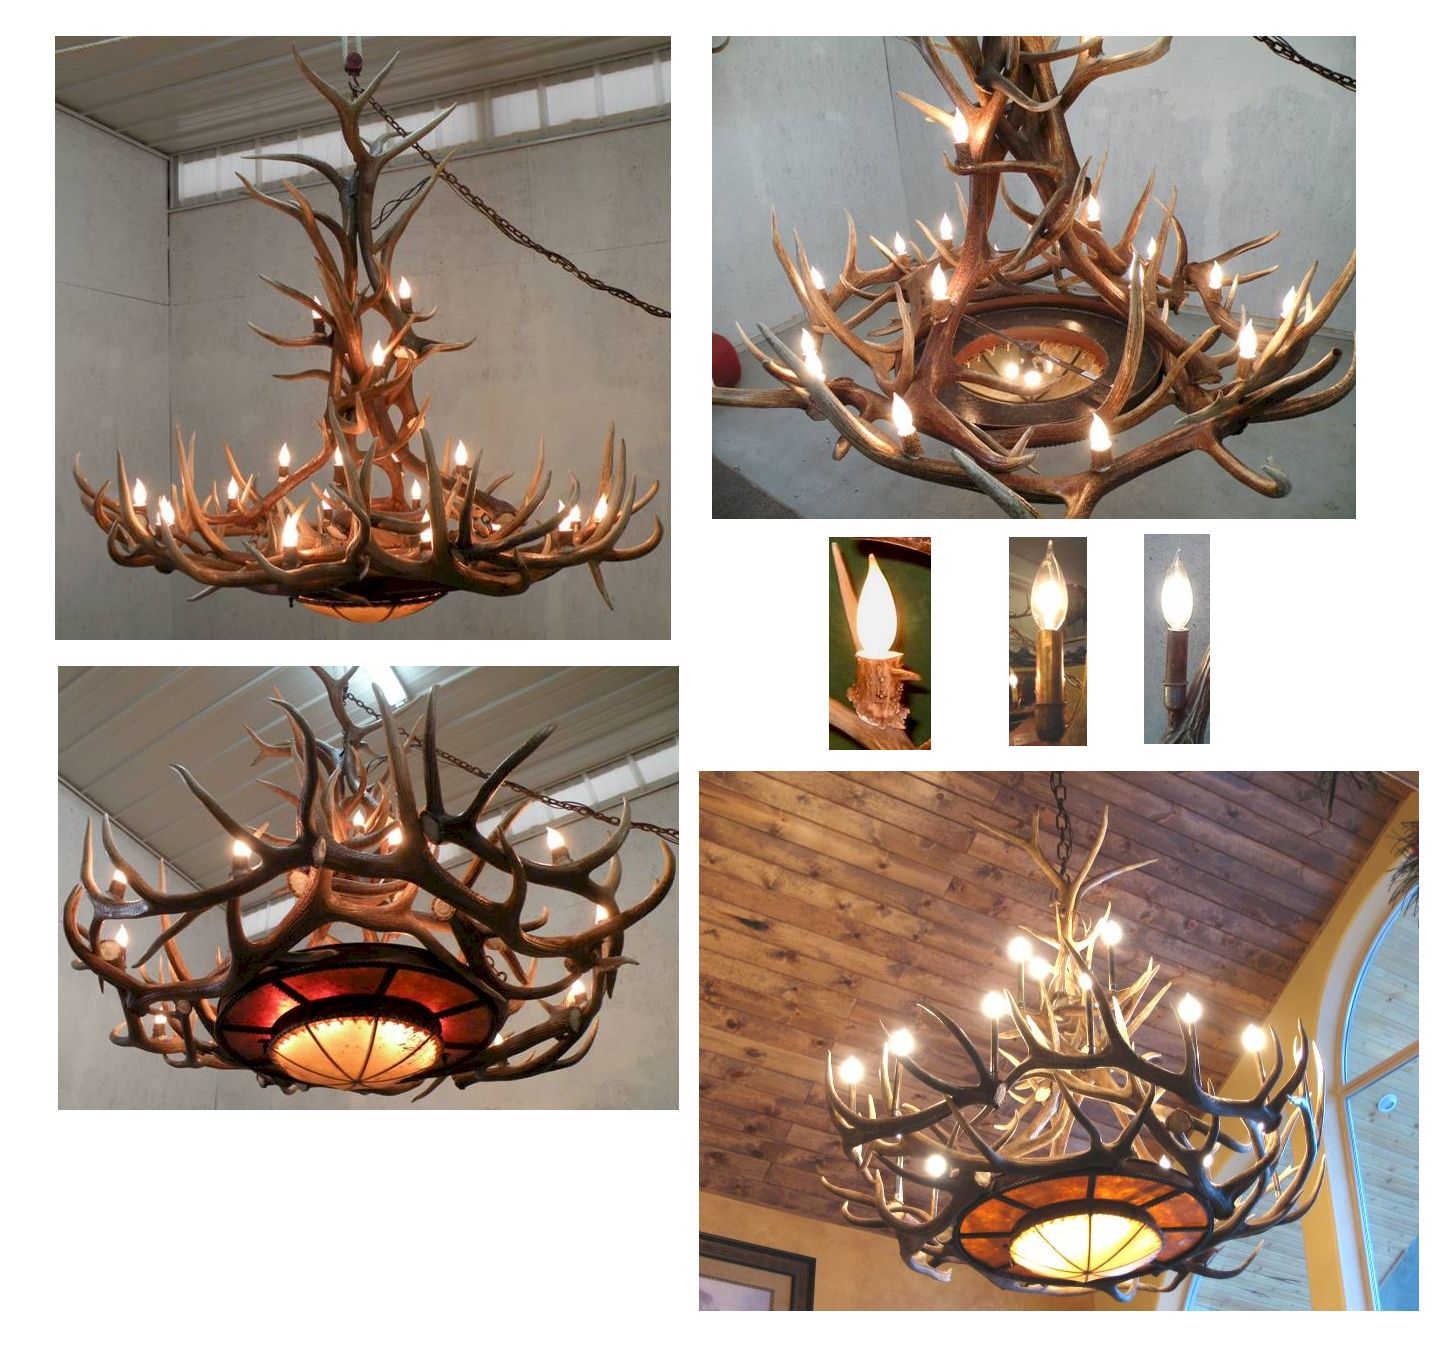 Antler chandeliers for sale real mccoy antler chandeliers for sale our antler chandeliers are made of real mule deer moose and elk antlers not the cheaply made cast resin versions you commonly aloadofball Gallery